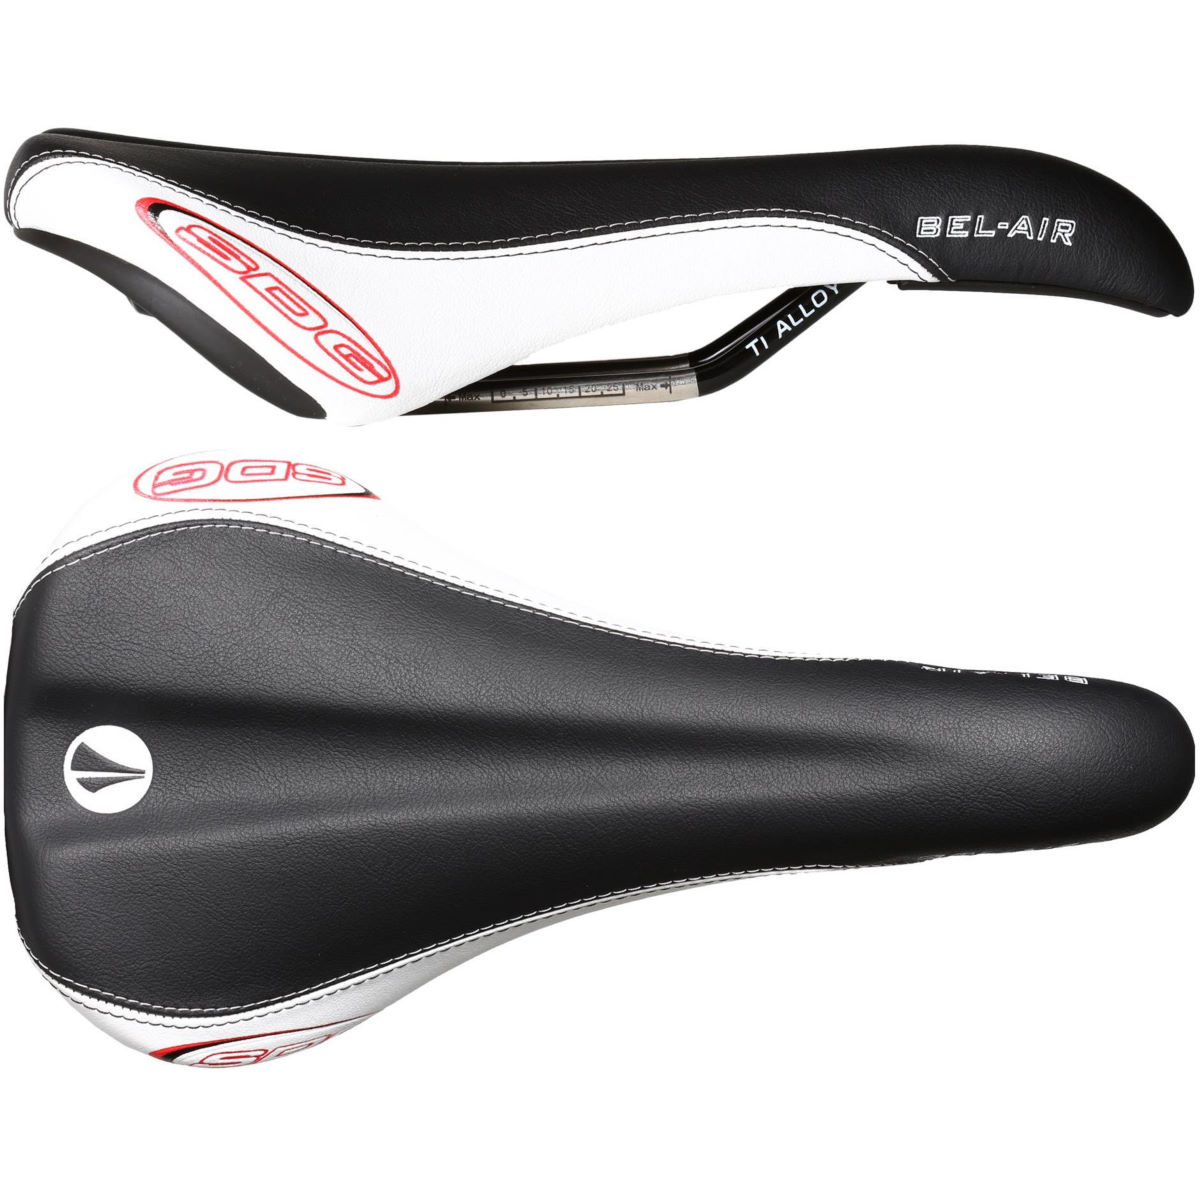 Selle SDG Bel Air RL (rails en titane/alliage) - W 140mm Noir/Blanc